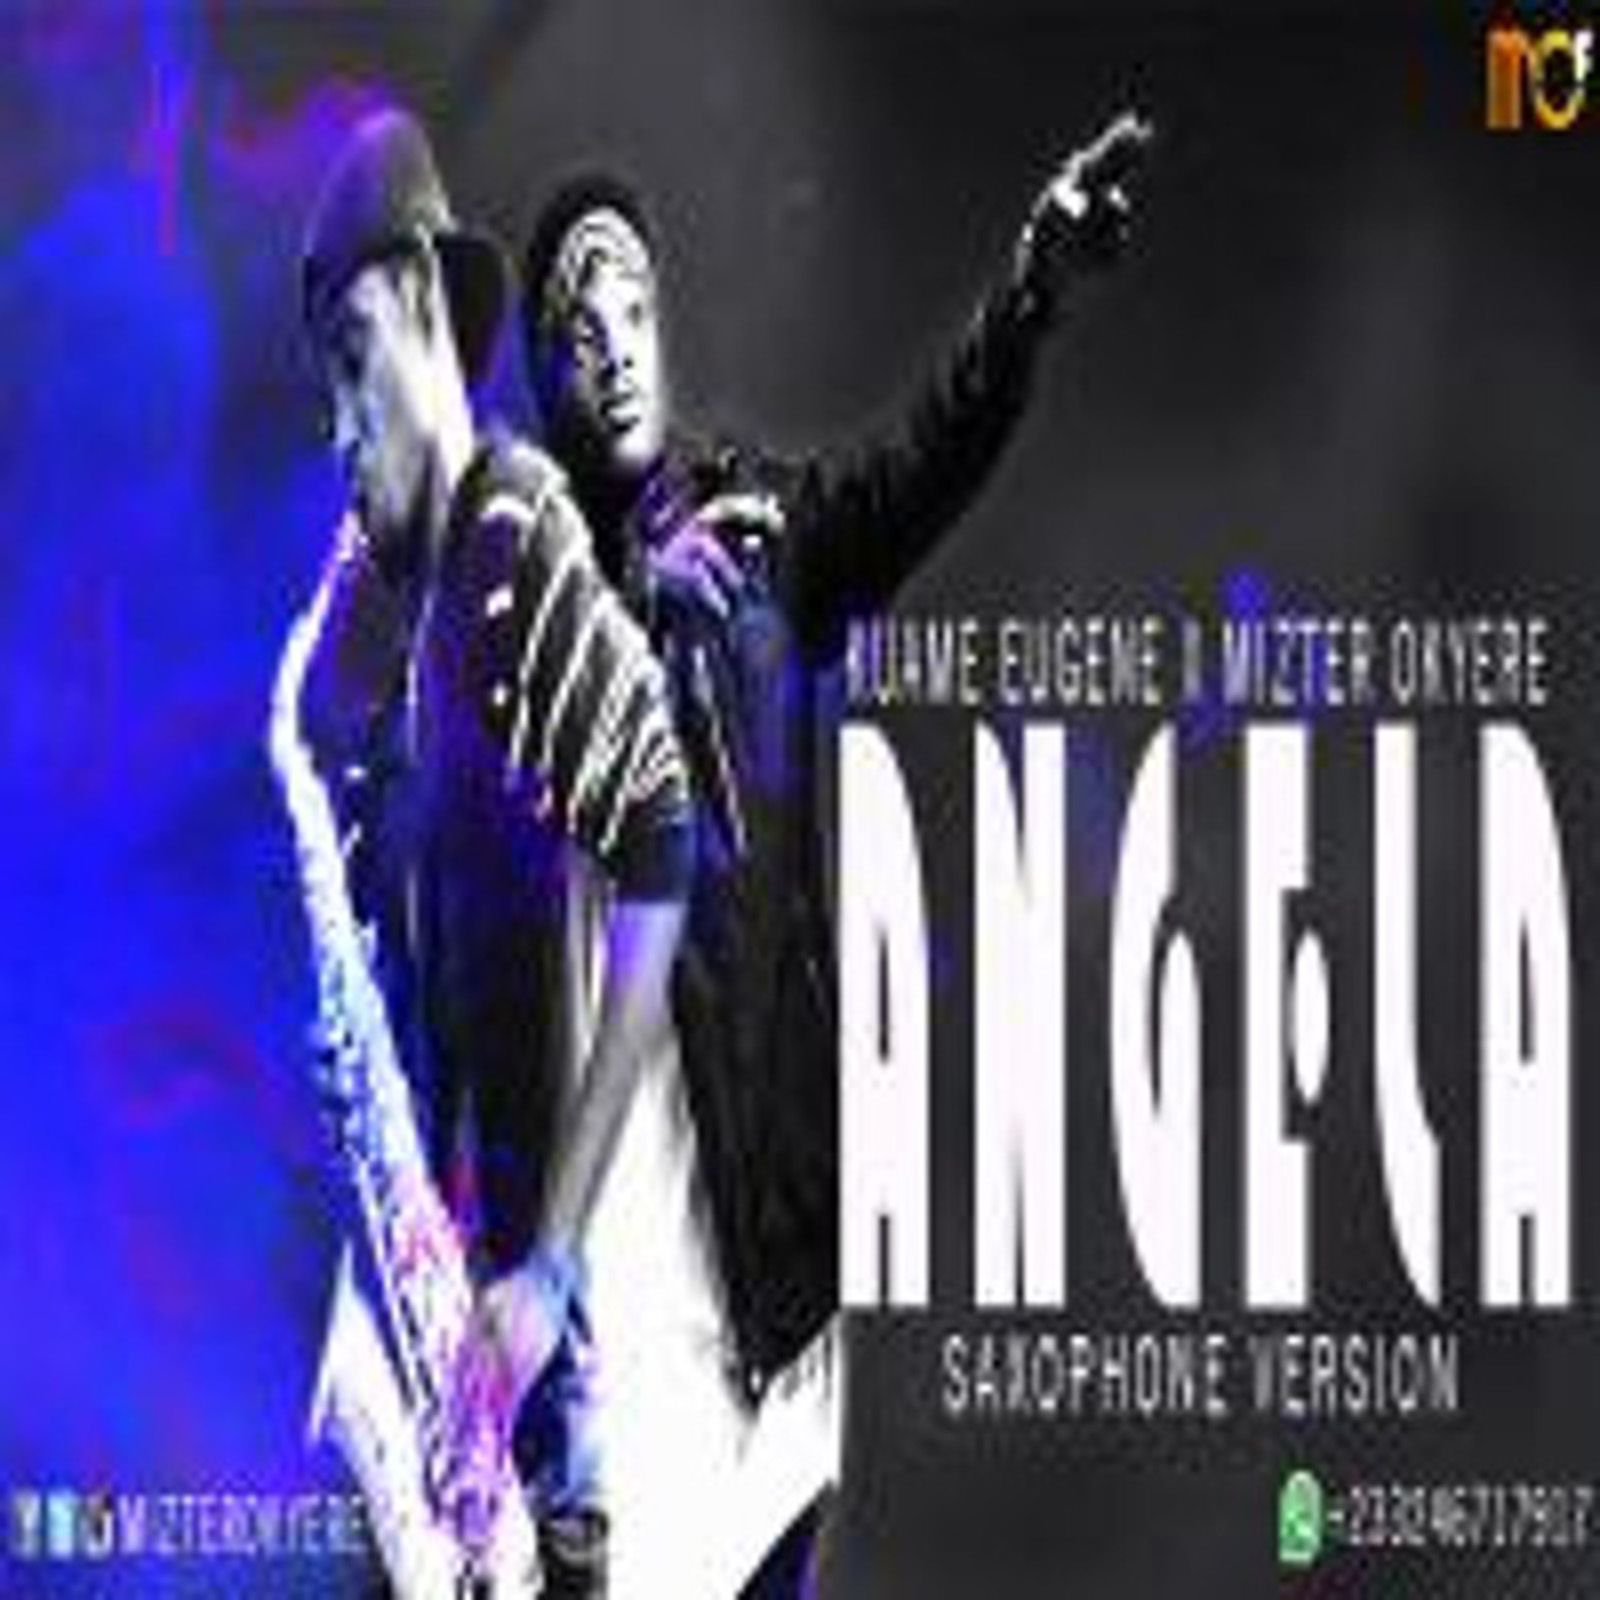 Angela (Saxophone Version) by Mizter Okyere